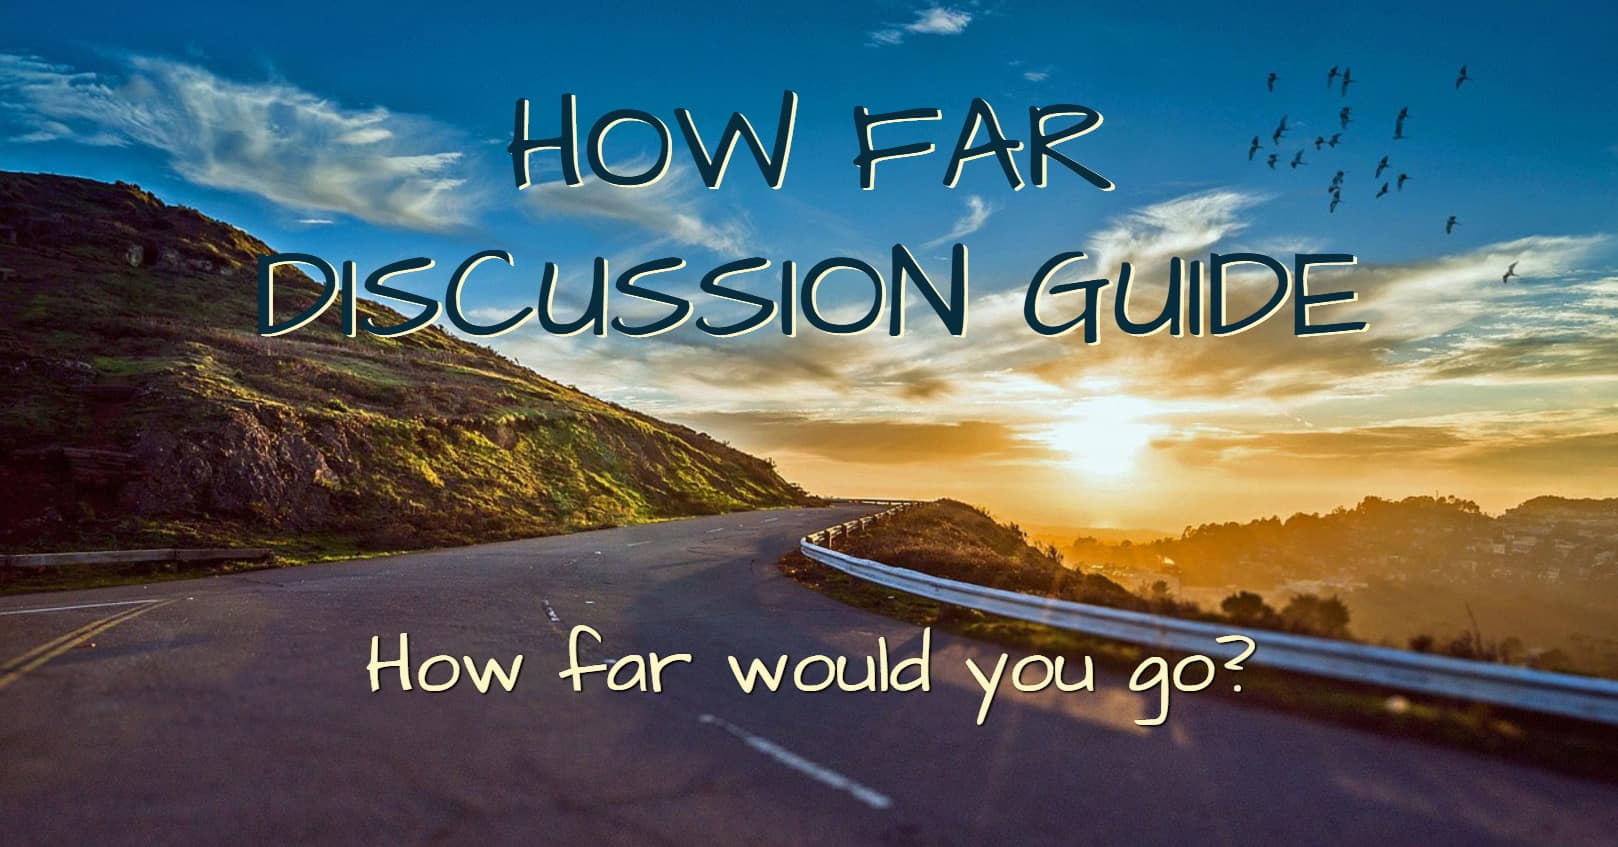 How Far Discussion Guide by Teyla Rachel Branton